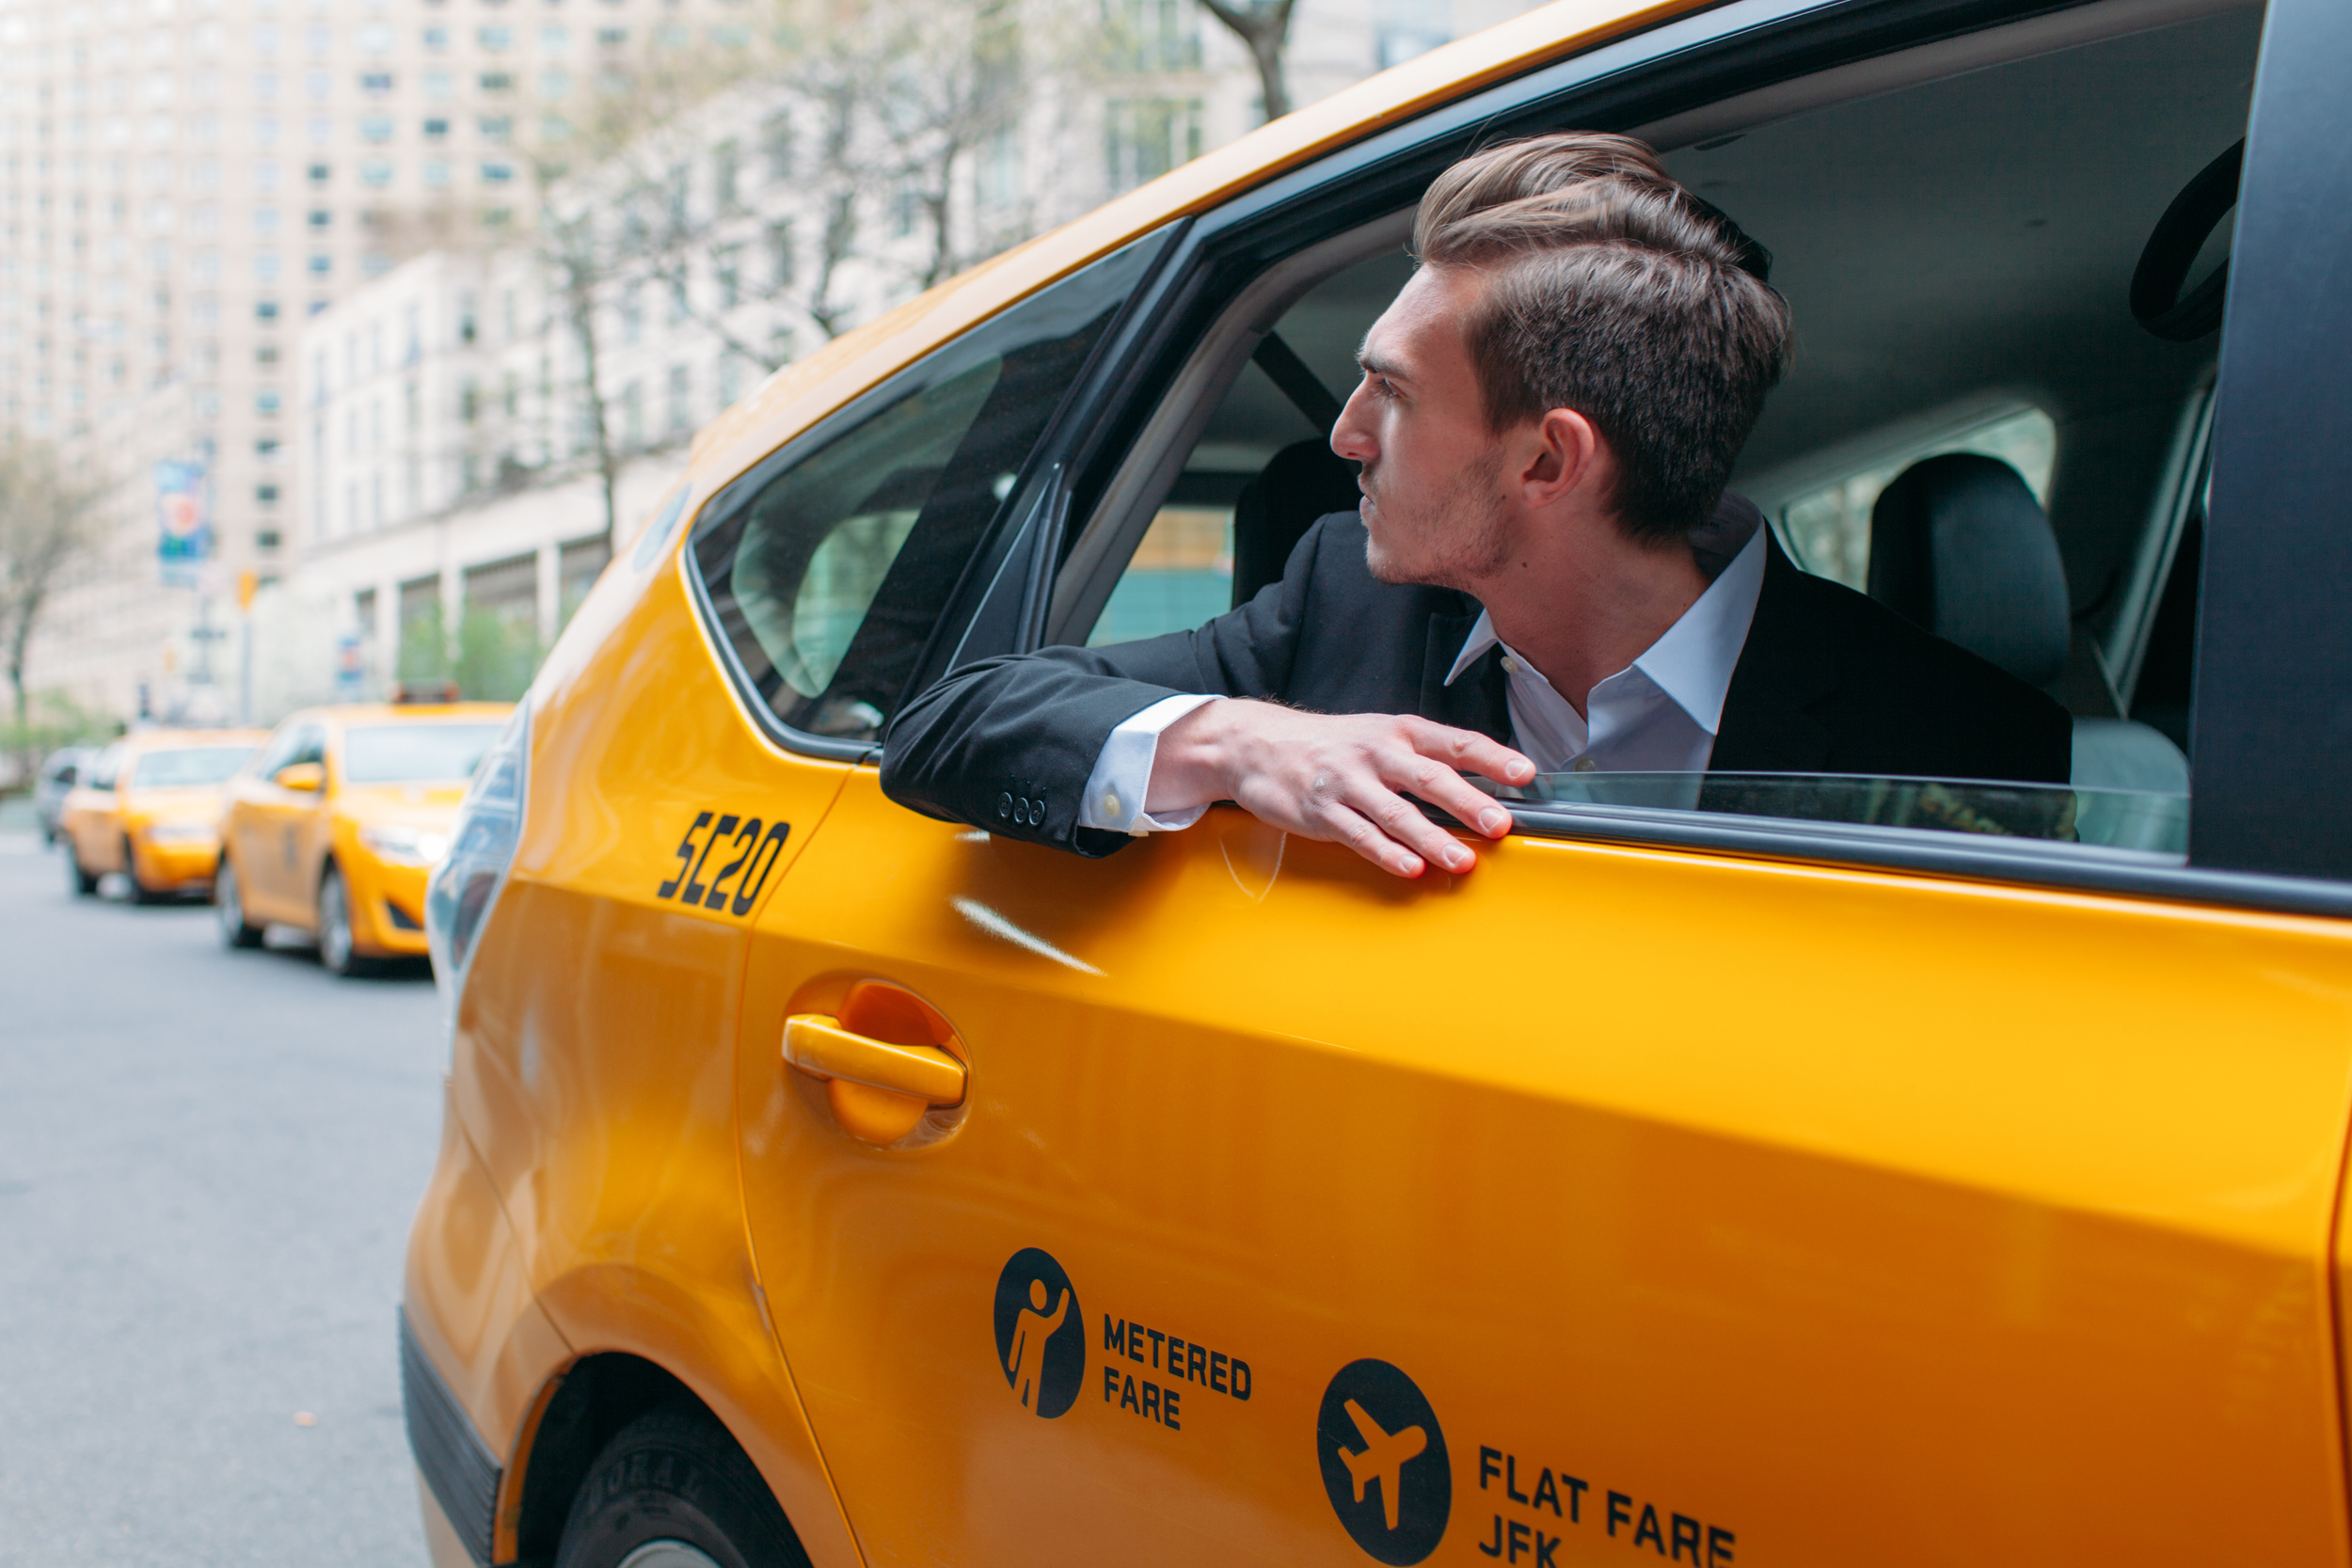 Grabbing a Taxi in New York City by The Finches